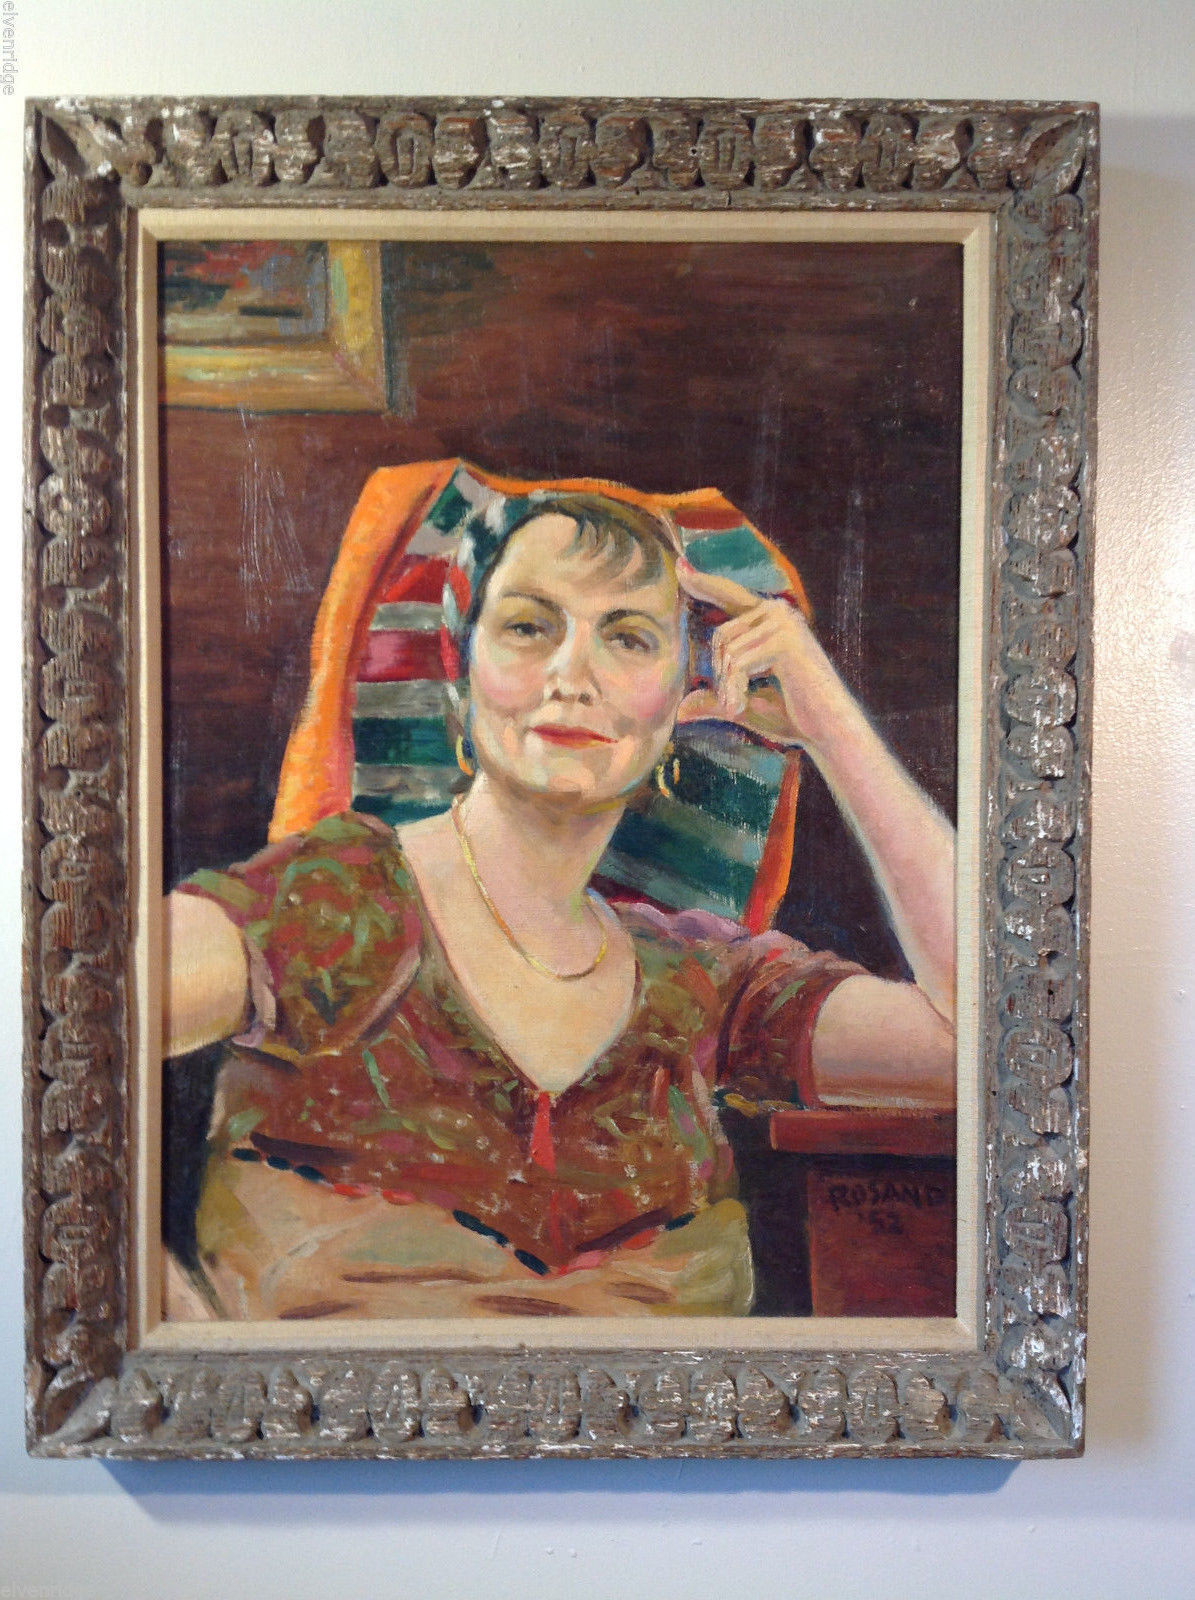 Johan H. Rosand Portrait of Woman in Striped Headwrap Oil on Canvas Original Art